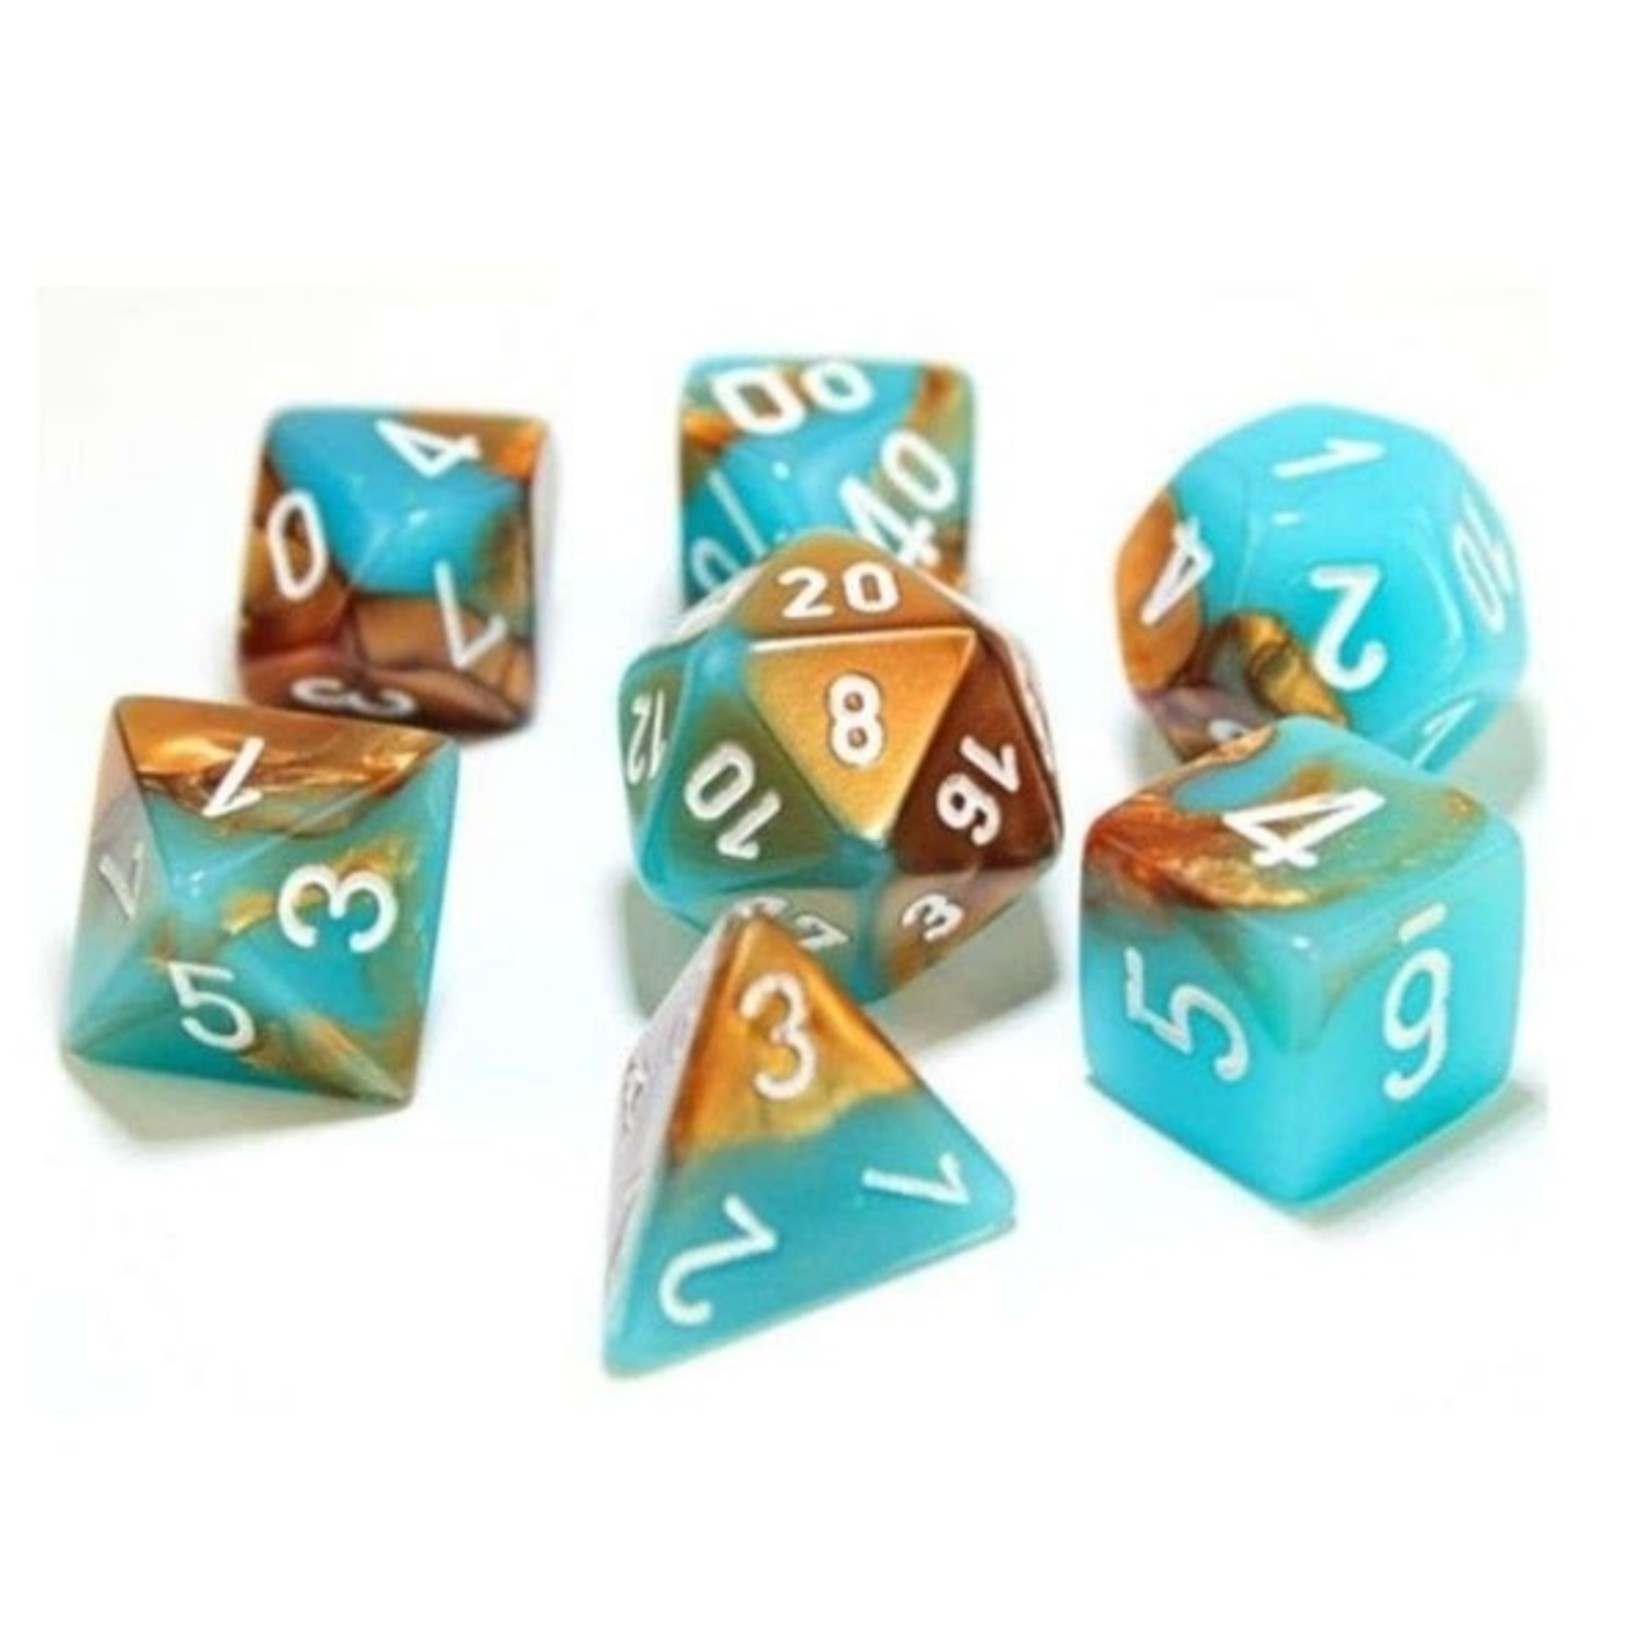 Chessex Gemini Polyhedral Copper-Turquoise/white 7-Die Set